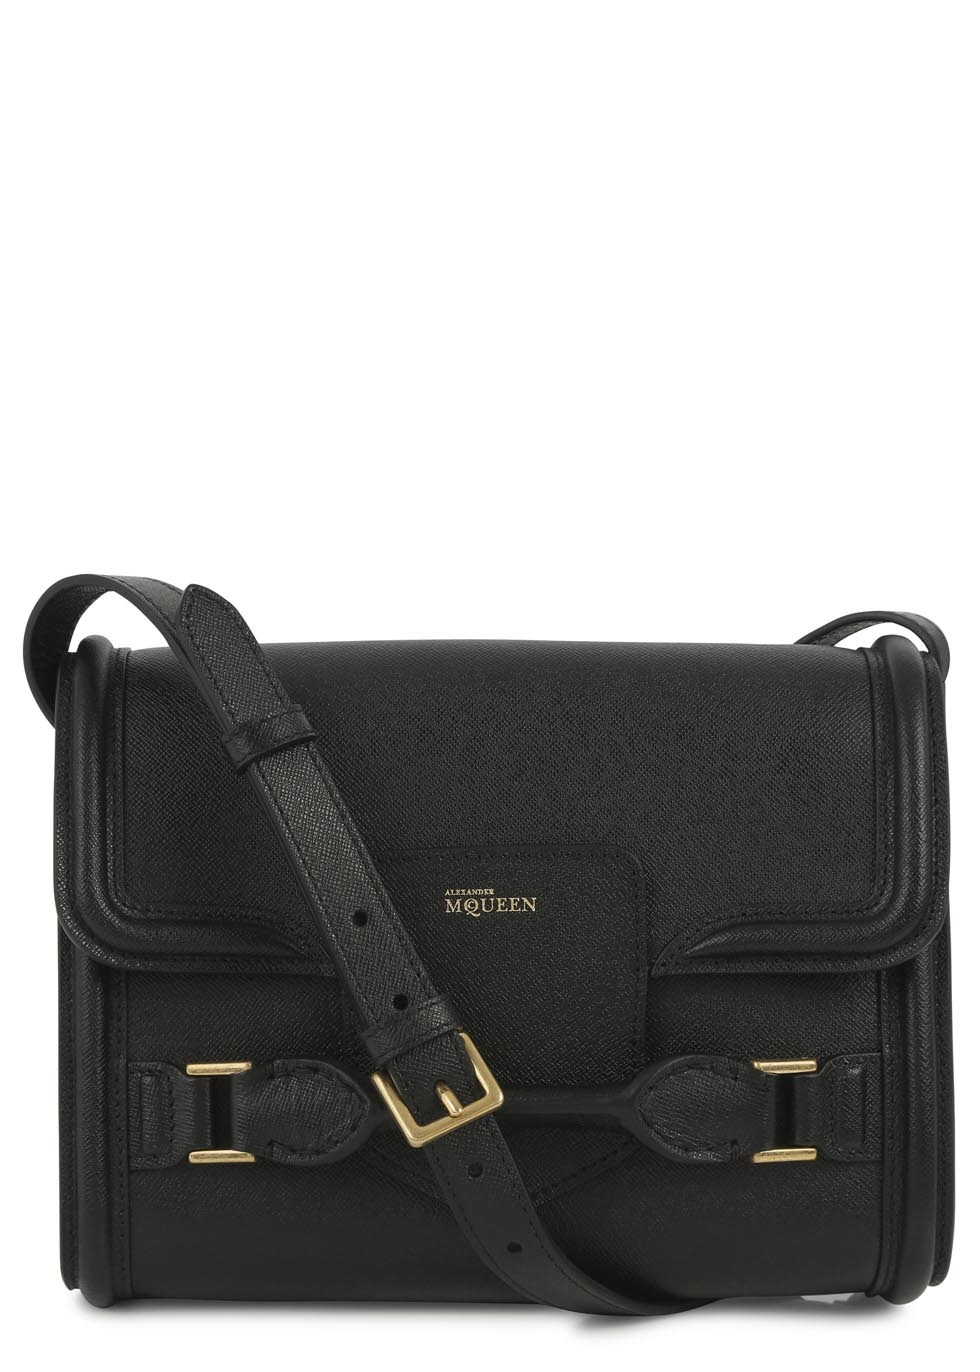 Heroine Black Leather Cross Body Bag - predominant colour: black; occasions: casual, work, creative work; style: satchel; length: across body/long; size: standard; material: leather; pattern: plain; finish: plain; embellishment: buckles; season: s/s 2014